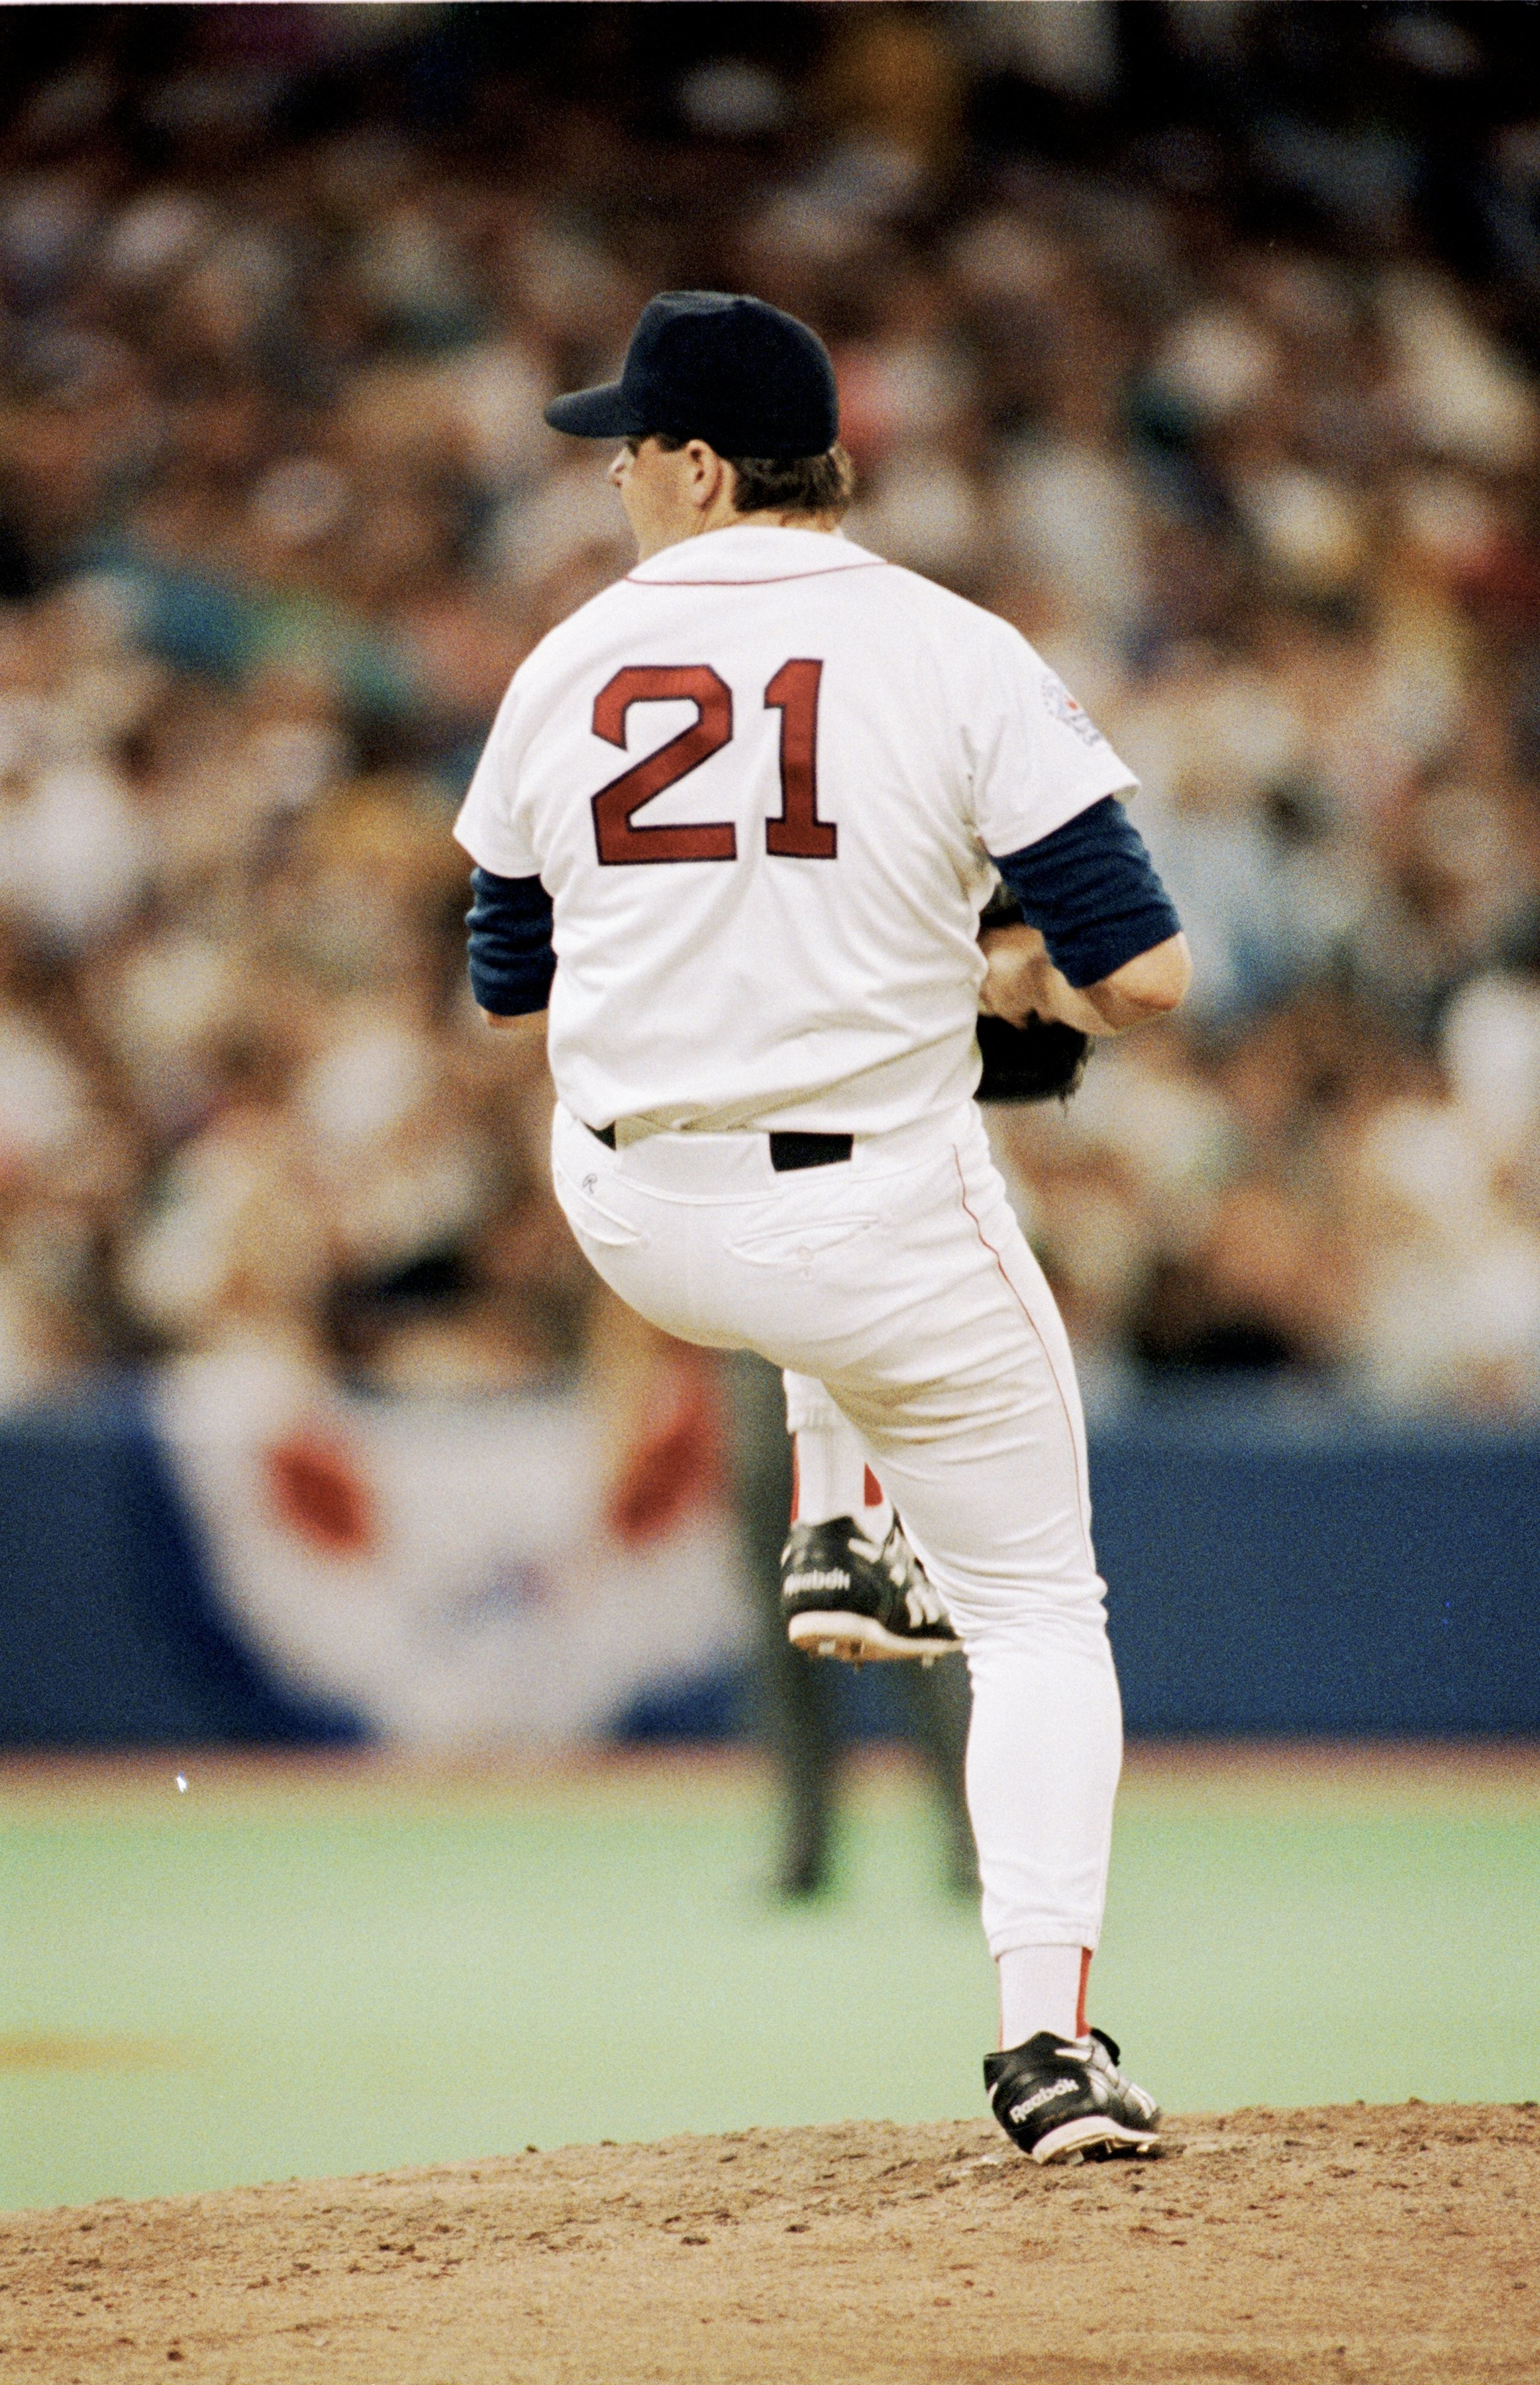 TORONTO - JULY 9:  Roger Clemens #21 of the Boston Red Sox pitches during the1991 All-Star Game at the Toronto Sky Dome on July 9, 1991 in Toronto, Ontario, Canada. (Photo by Rick Stewart/Getty Images)